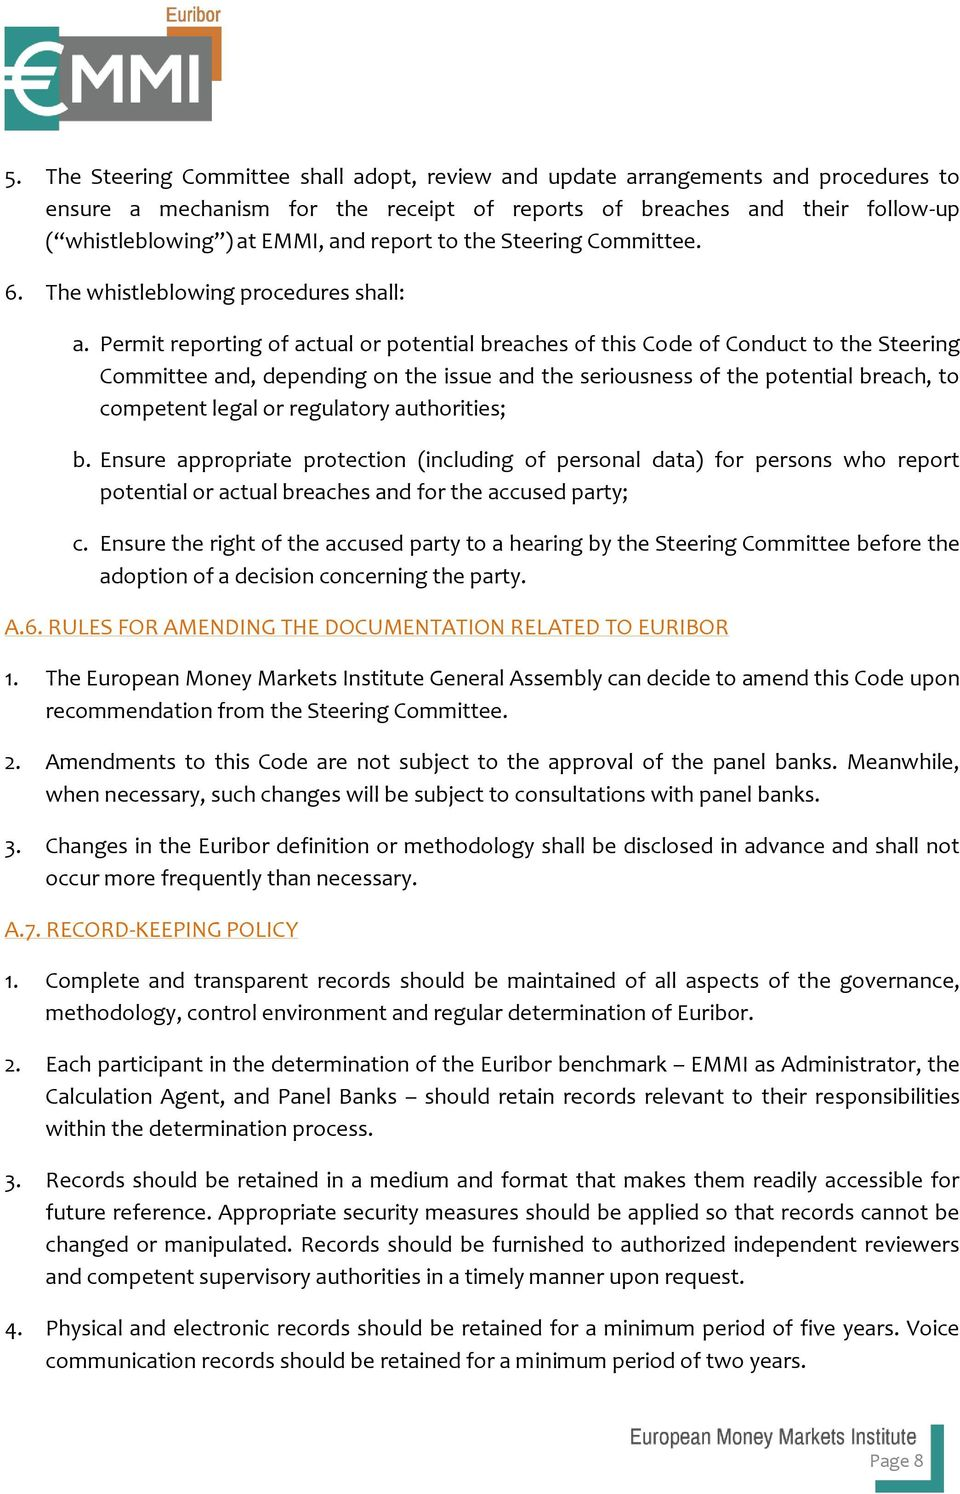 Permit reporting of actual or potential breaches of this Code of Conduct to the Steering Committee and, depending on the issue and the seriousness of the potential breach, to competent legal or